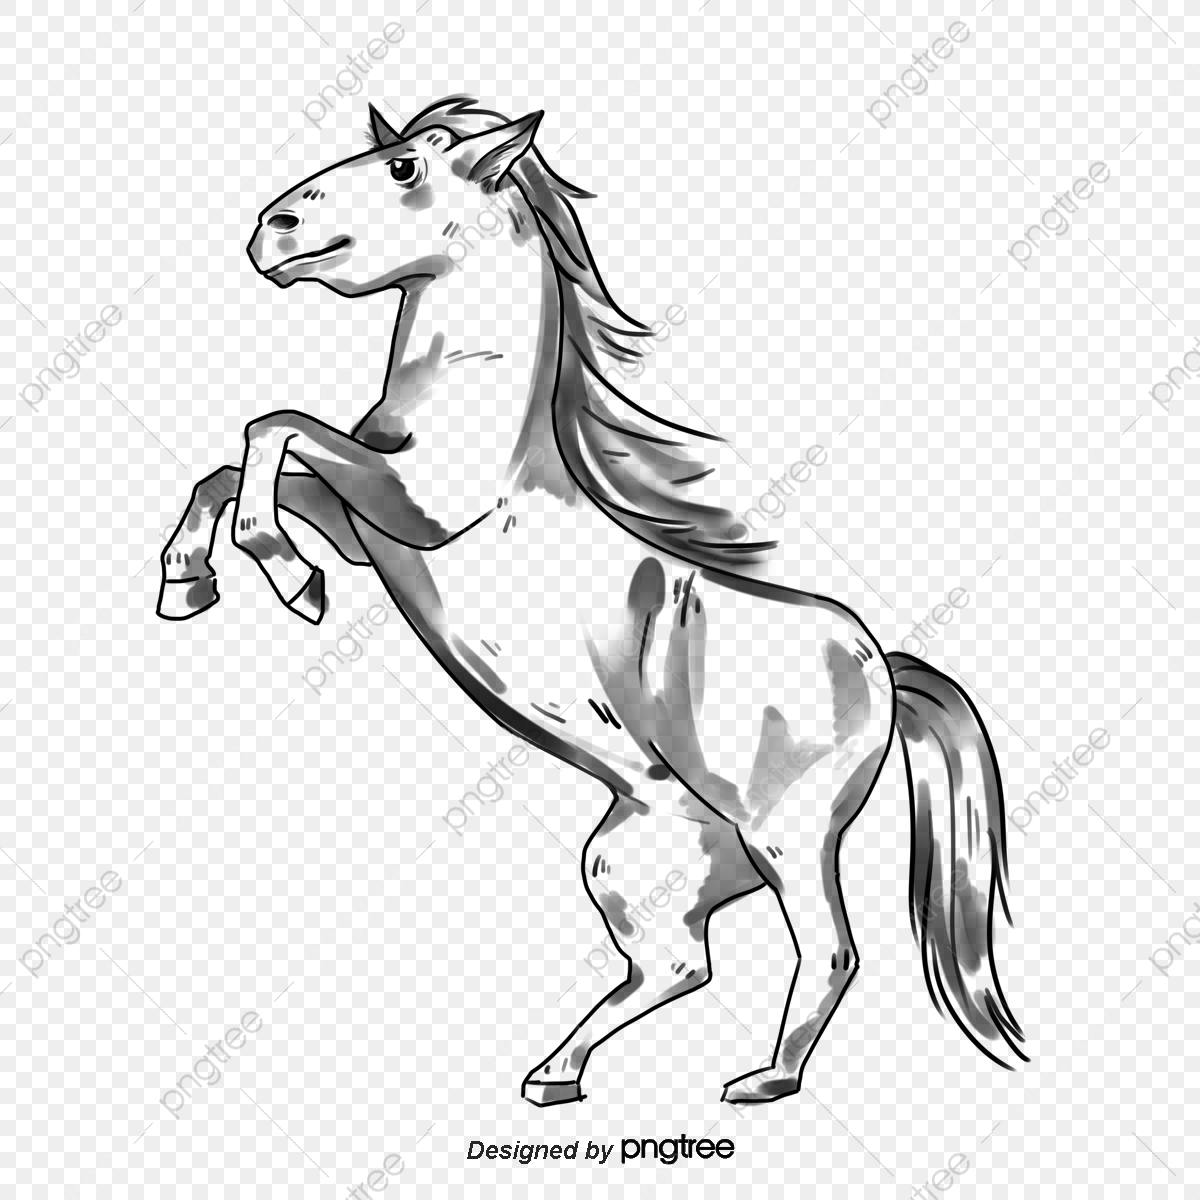 White Horse Png Images Vector And Psd Files Free Download On Pngtree